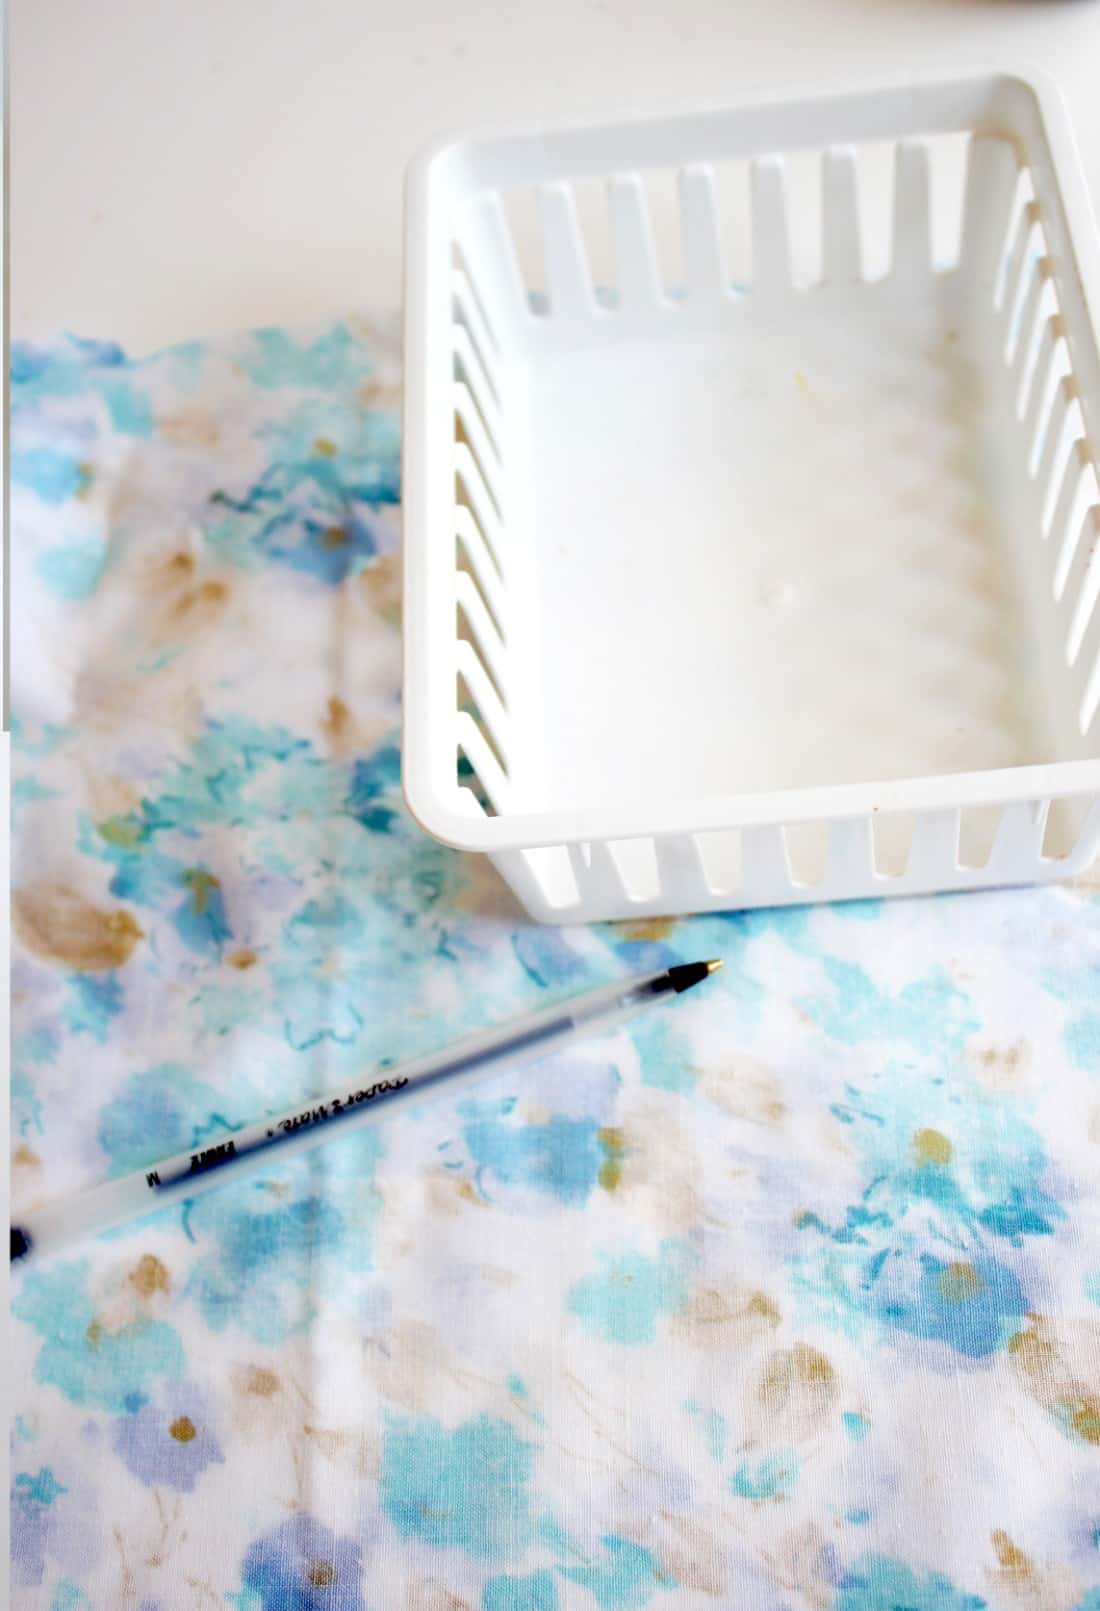 Gussy up some fabric bins with Mod Podge in this easy dollar store craft! This is great for using up those small pieces of fabric for something pretty.